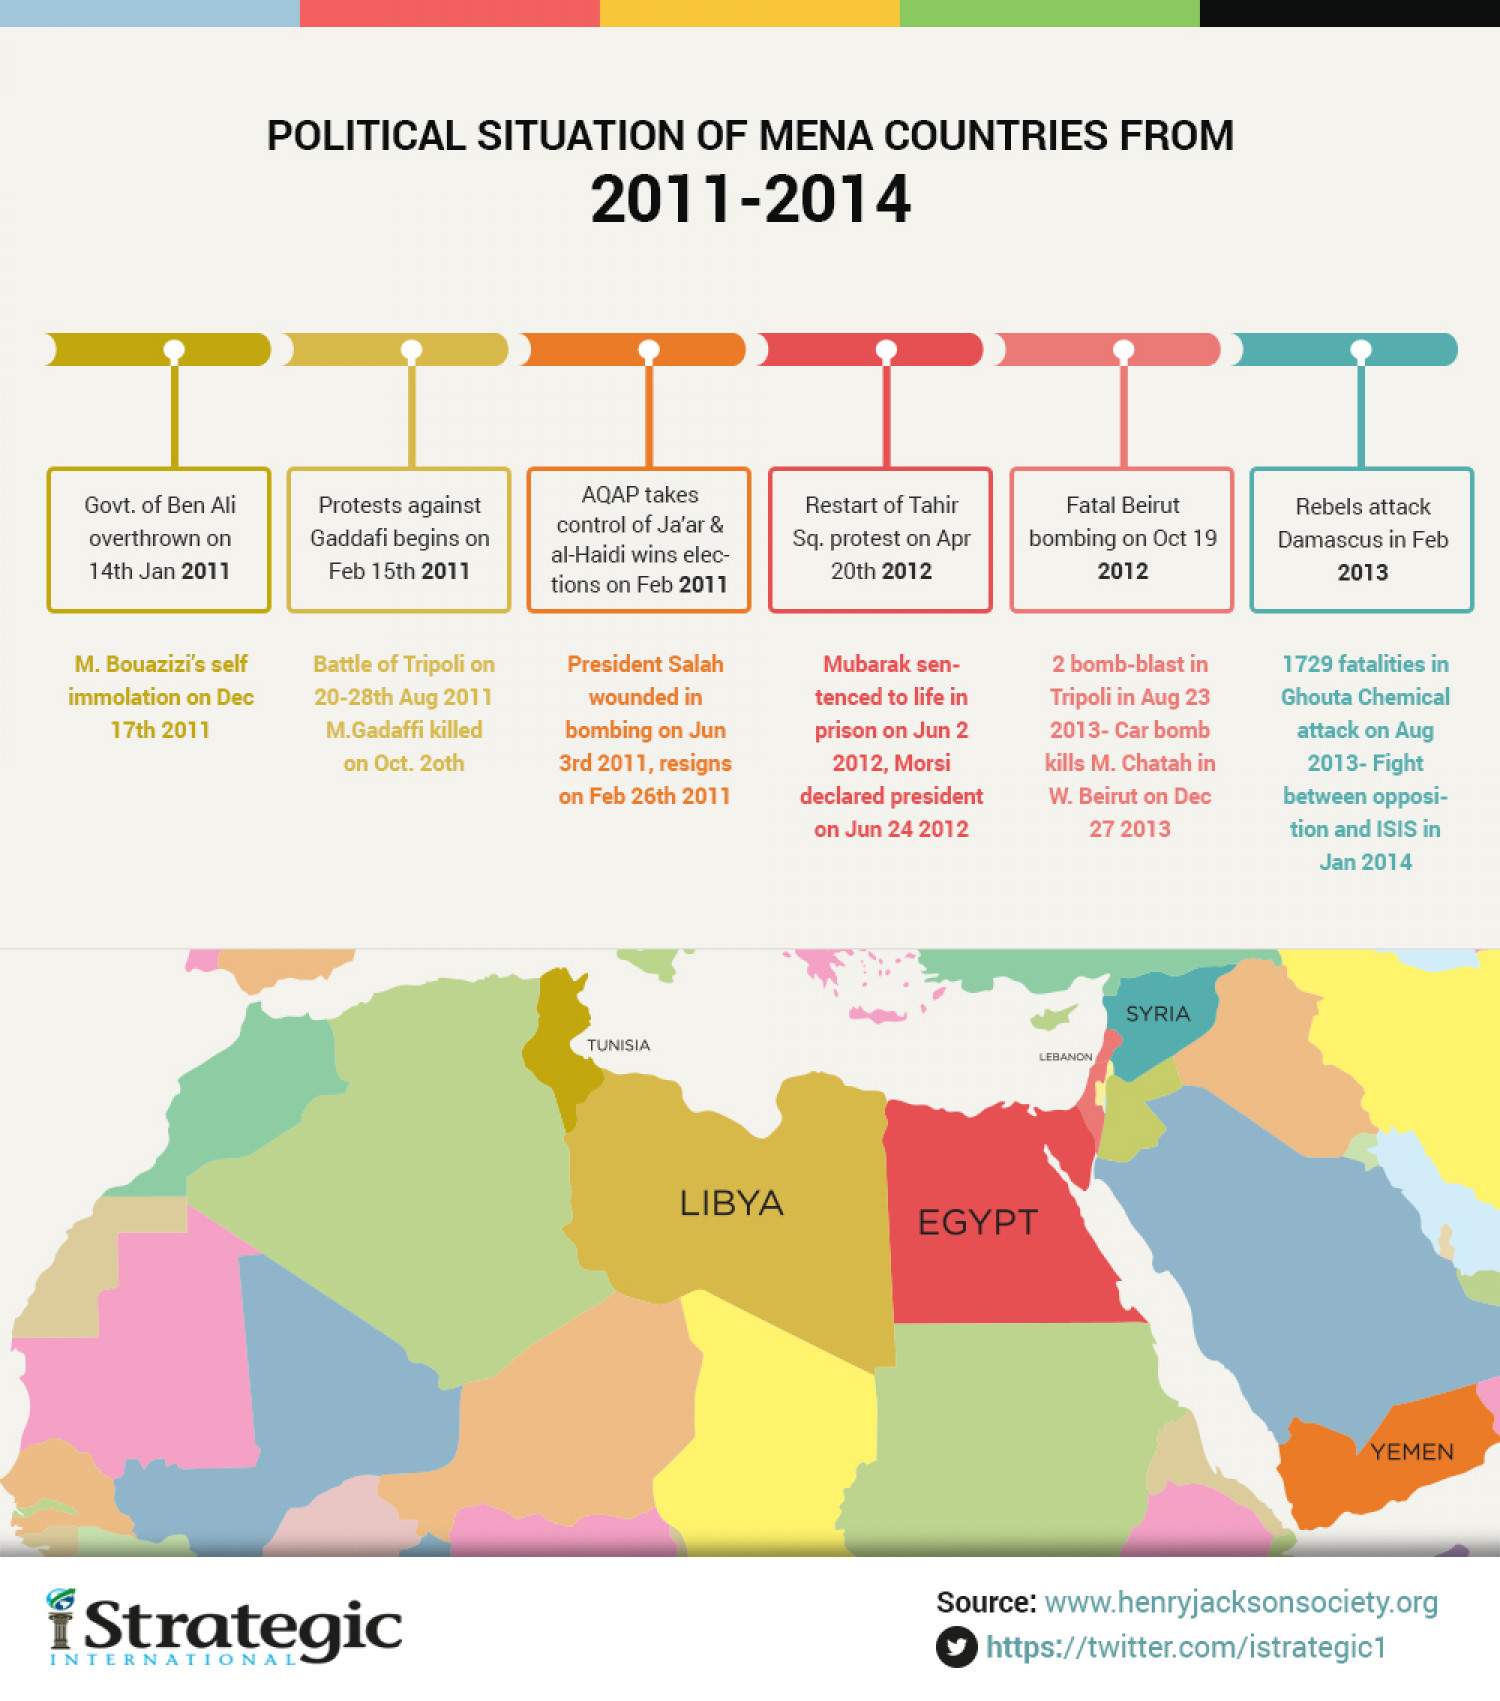 Political Situation of MENA Countries Infographic